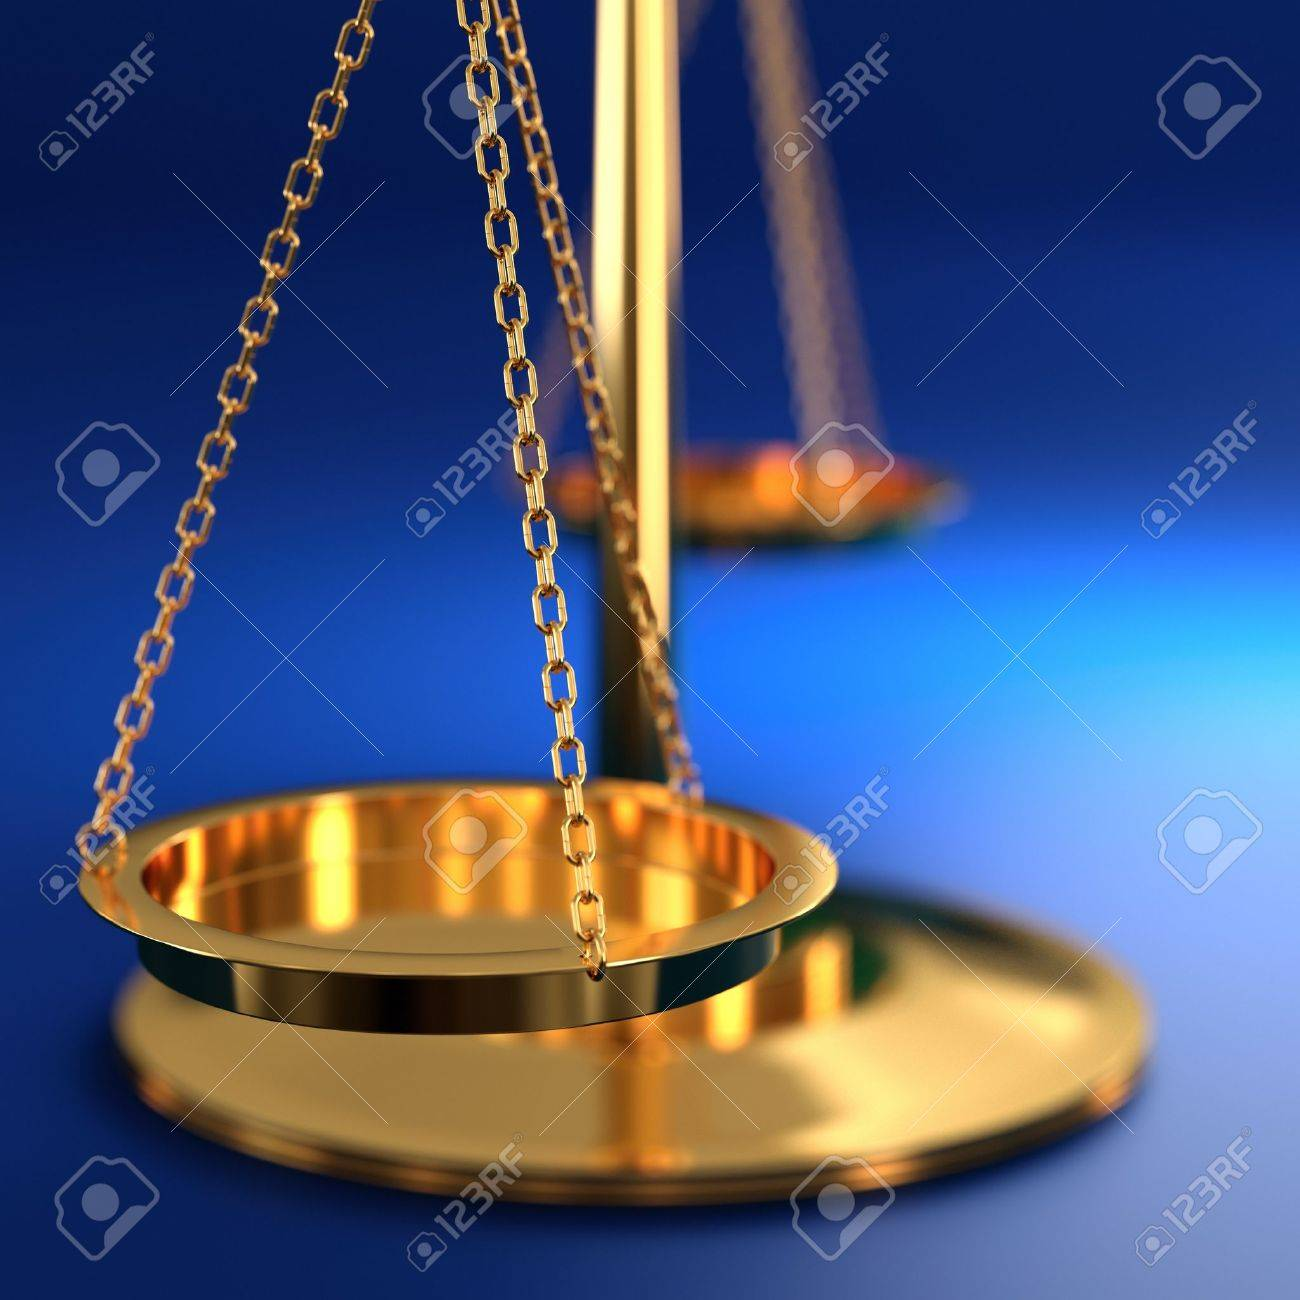 3D illustration of scales of justice on blue background Stock Photo - 17439059